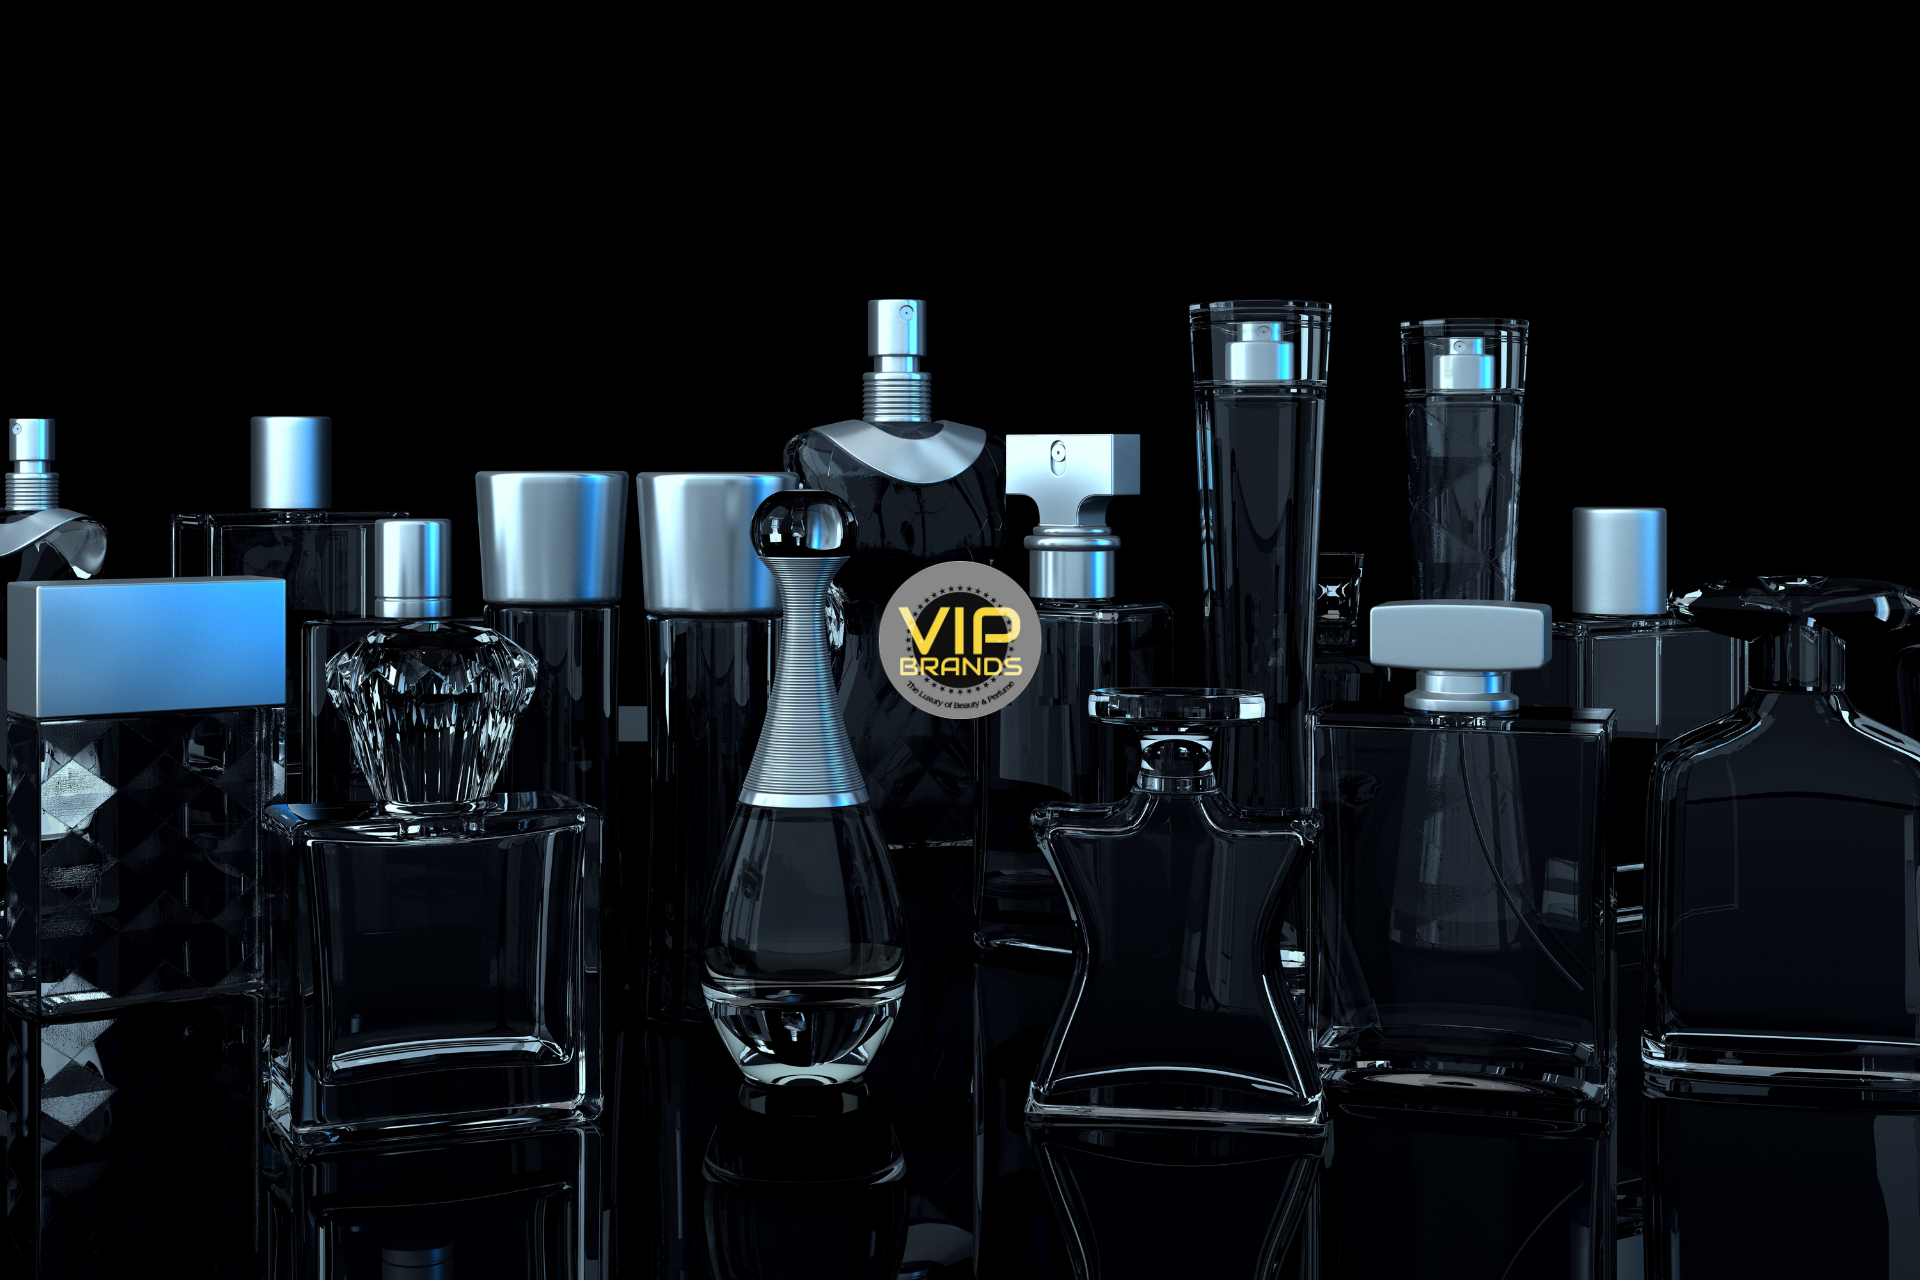 VIP BRANDS - Dein Parfum & Beauty Onlineshop